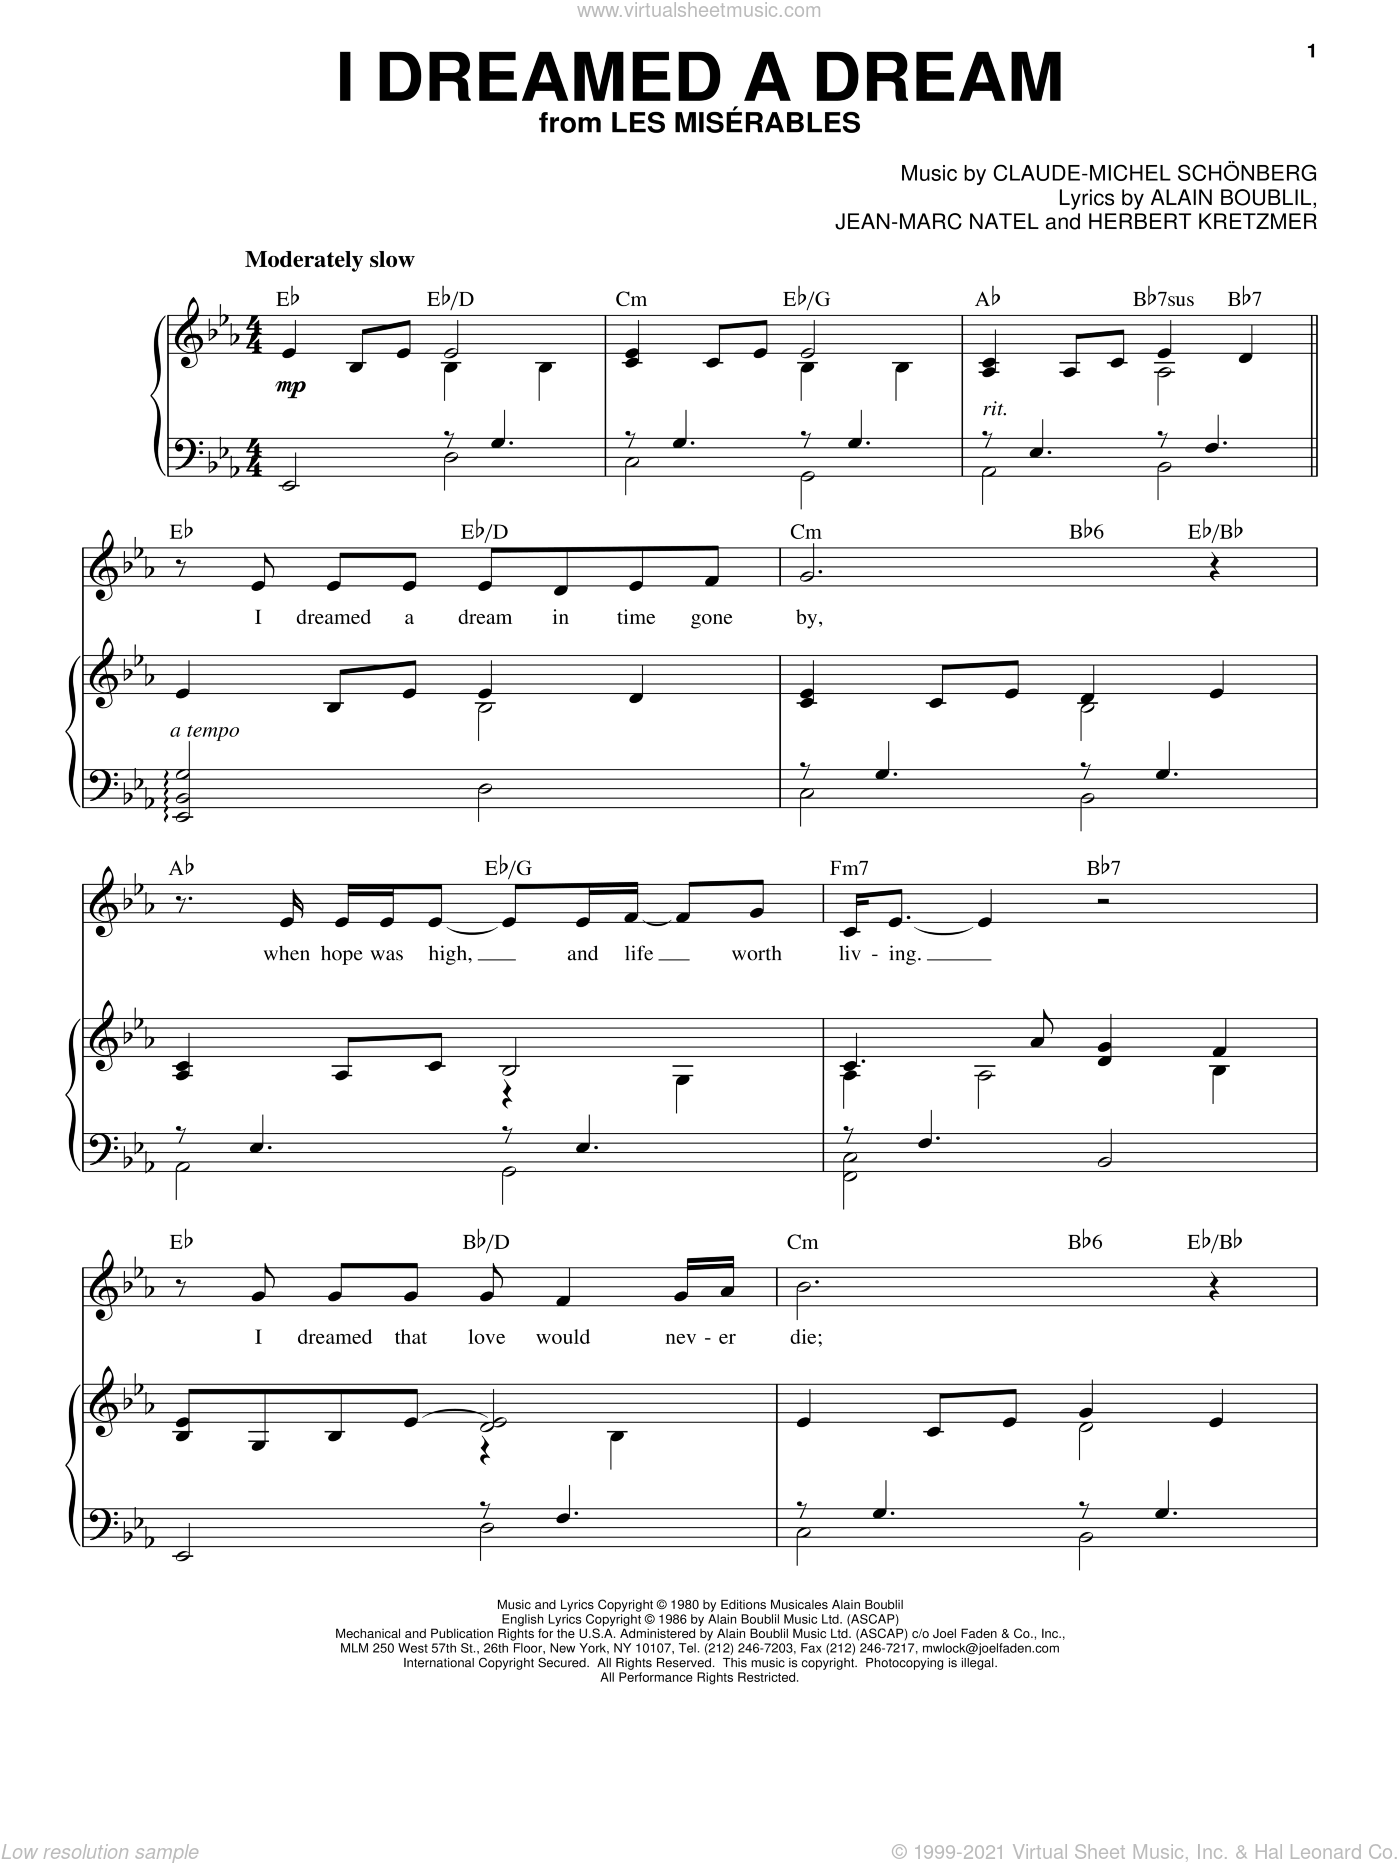 I Dreamed A Dream sheet music for voice and piano by Susan Boyle, Alain Boublil, Claude-Michel Schonberg, Herbert Kretzmer and Les Miserables (Musical), intermediate voice. Score Image Preview.